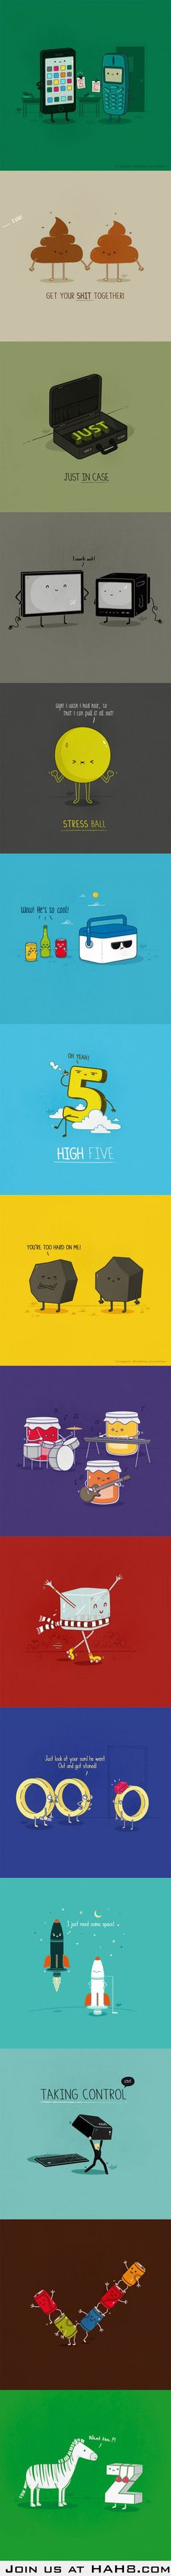 Cute Puns - Do you get them all?-this might be good in playing pictionary